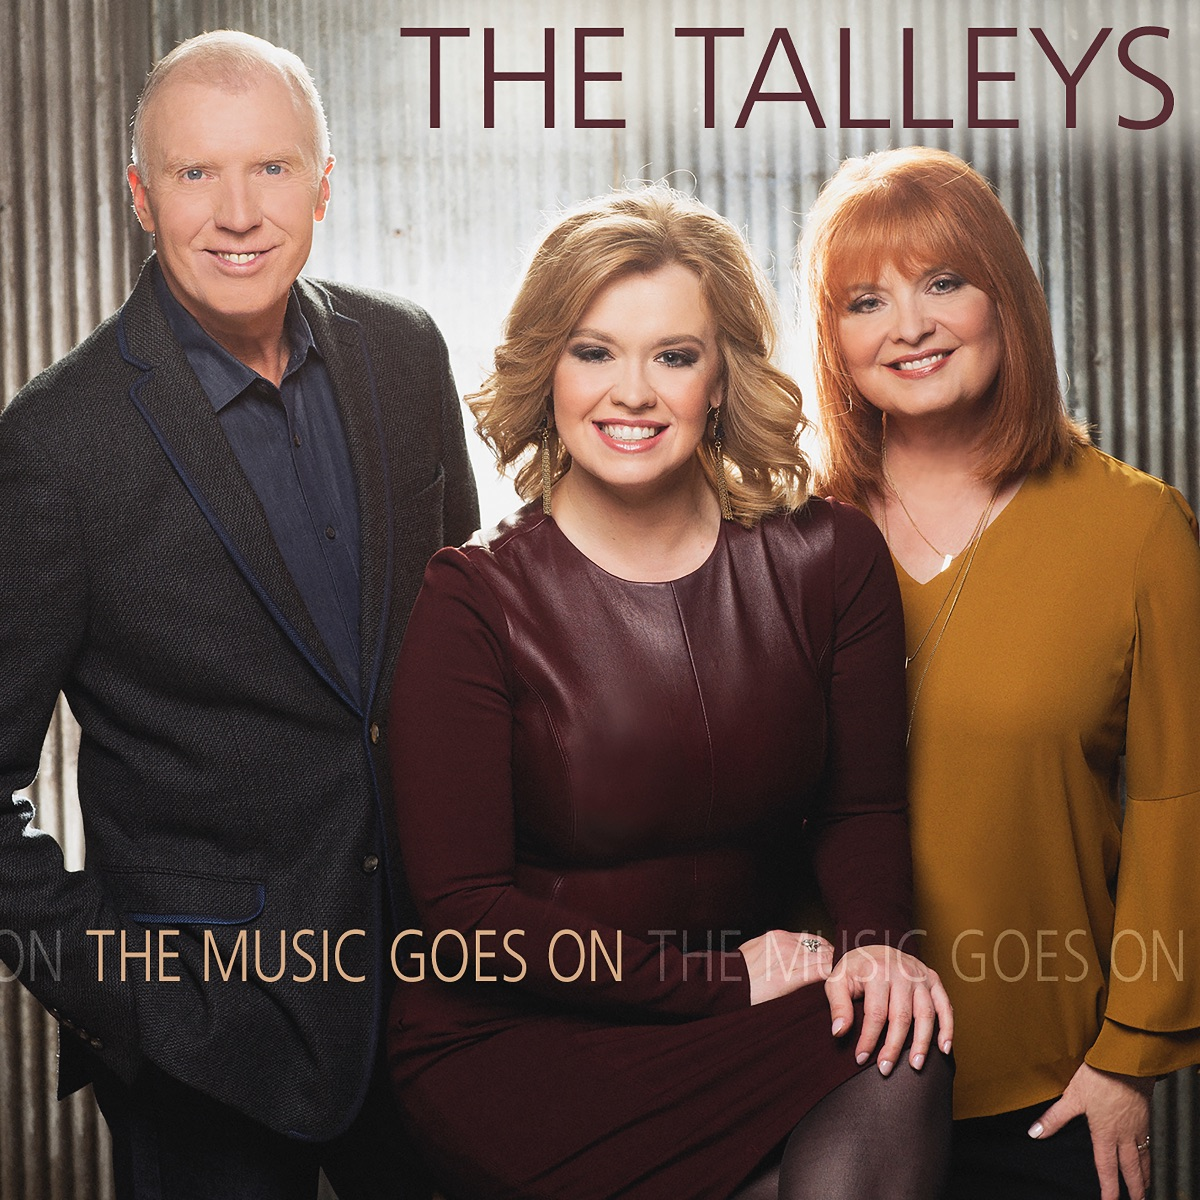 The Cover of The Talleys' The Music Goes On